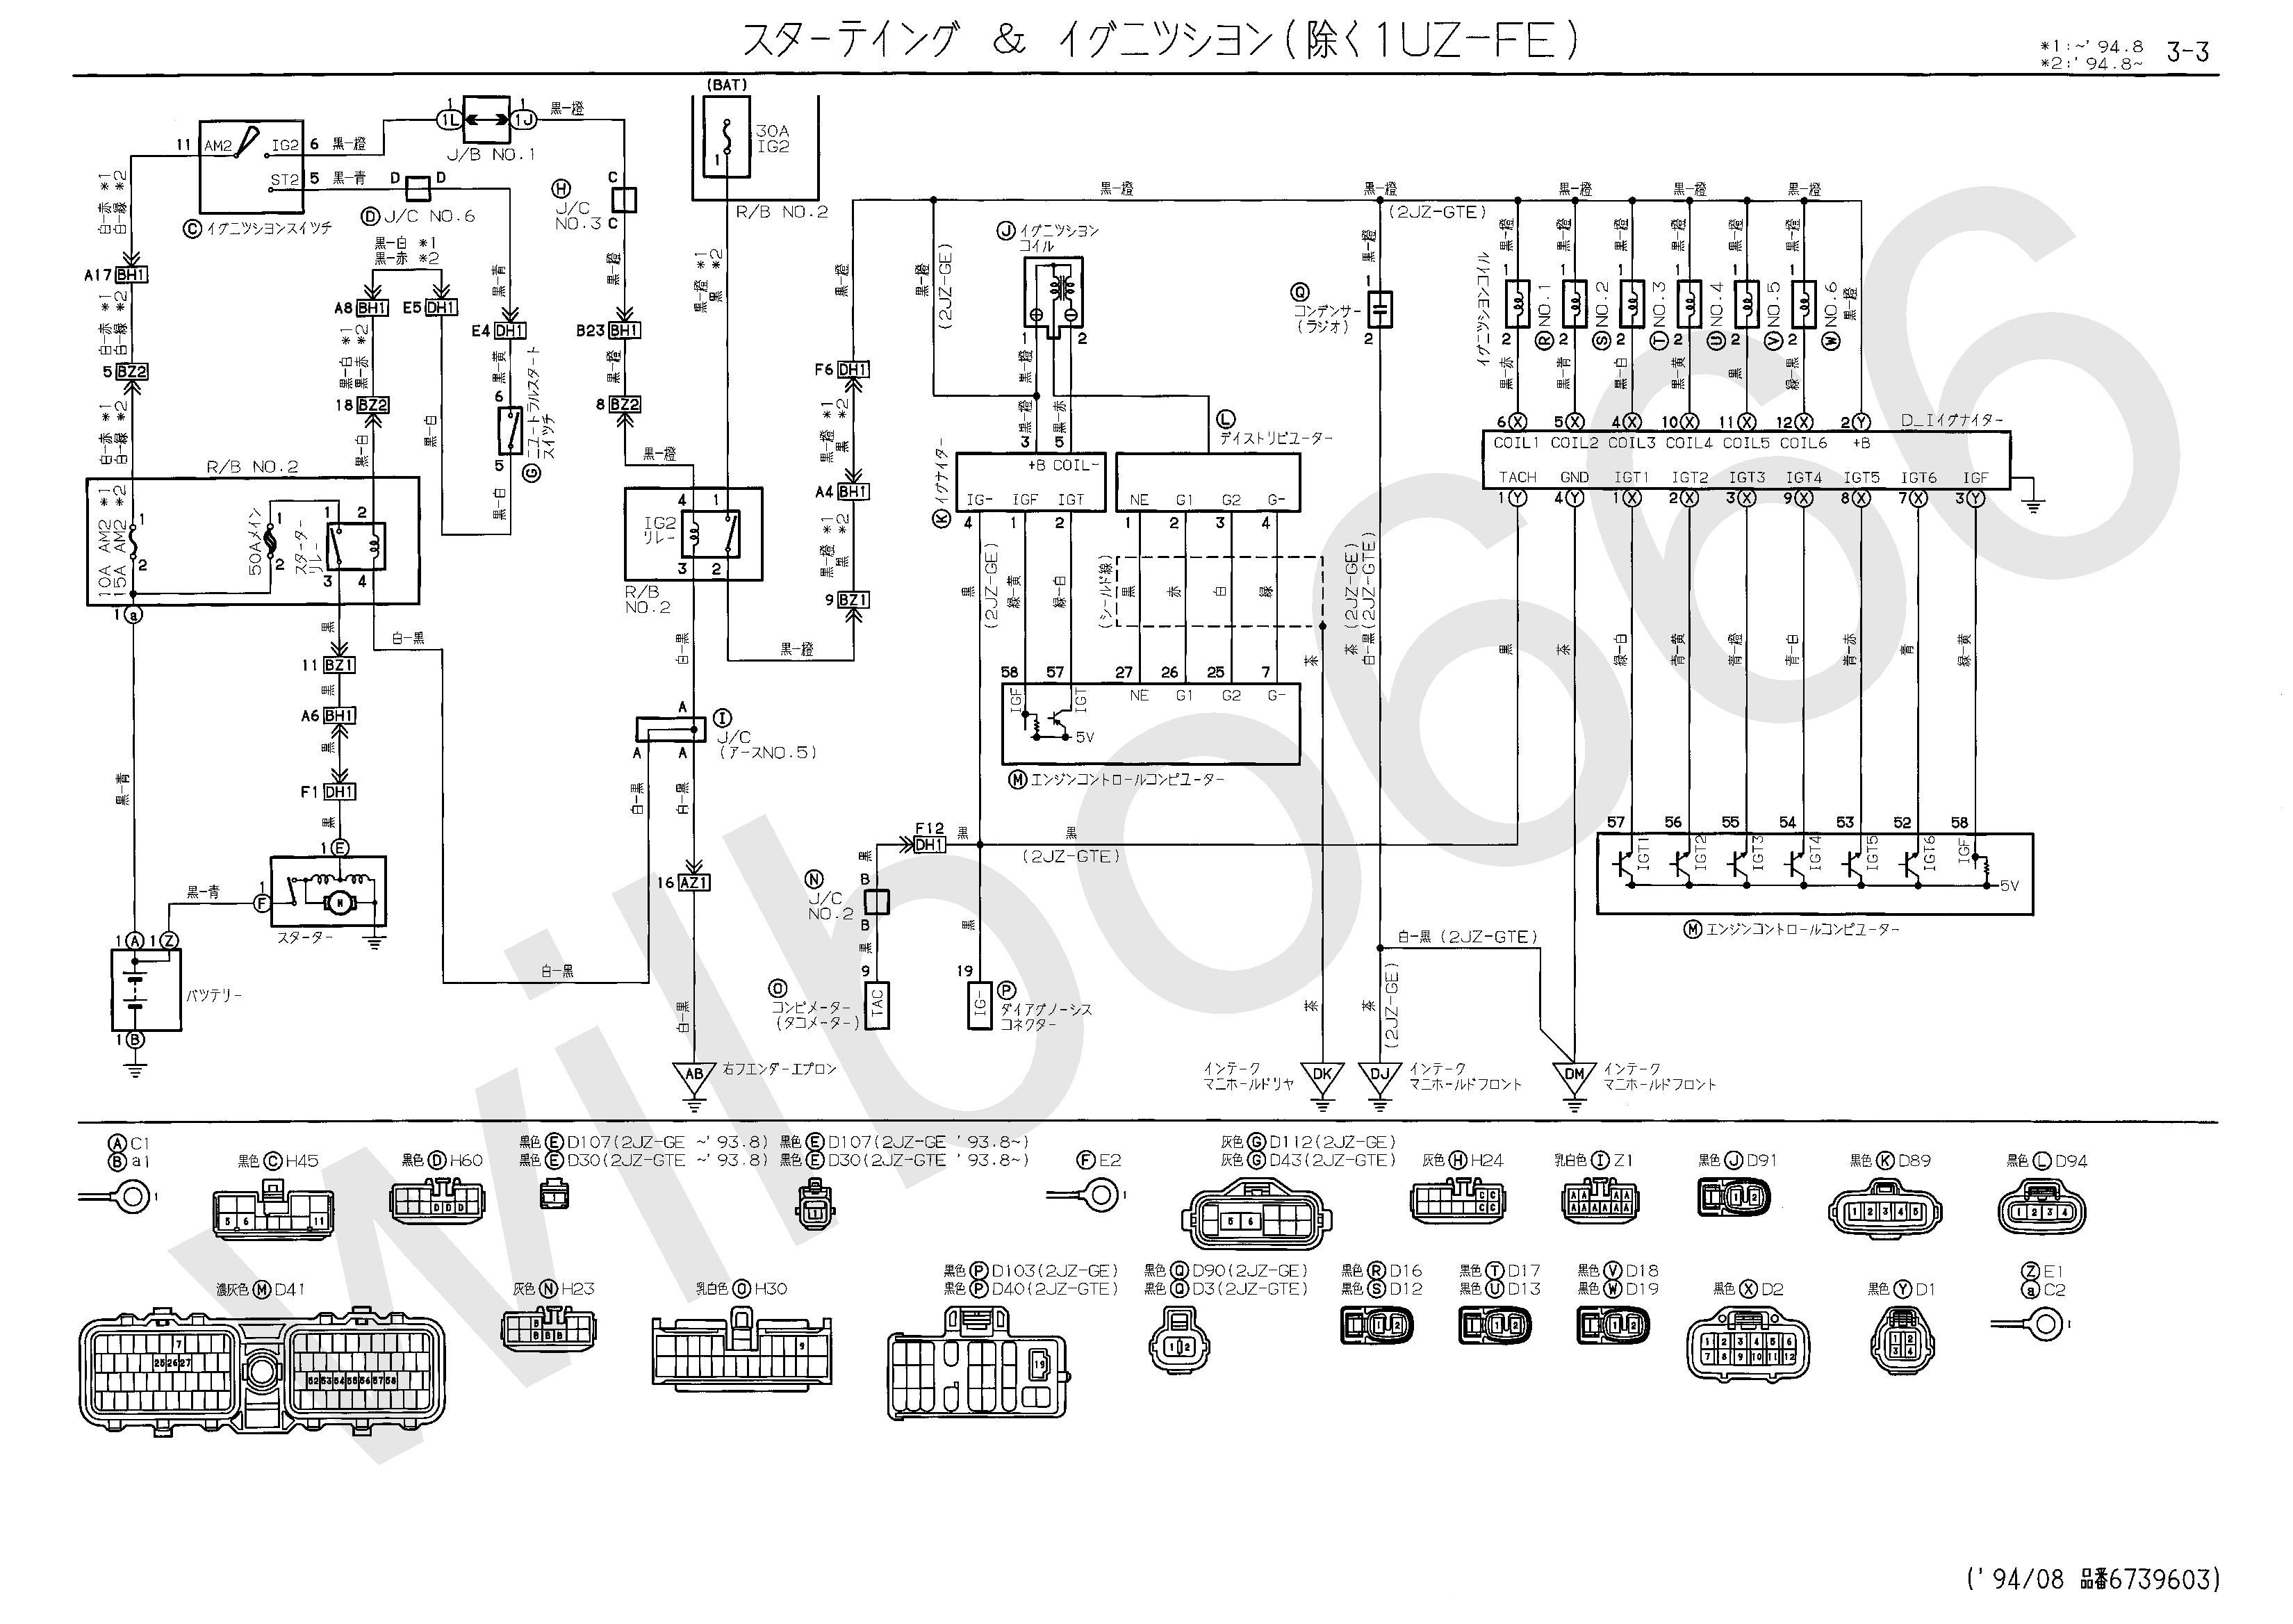 JZS14%23%2C UZS14%23 Electrical Wiring Diagram 6739604 3 3 wilbo666 2jz ge jzs147 engine wiring 2jzgte wiring harness at gsmx.co